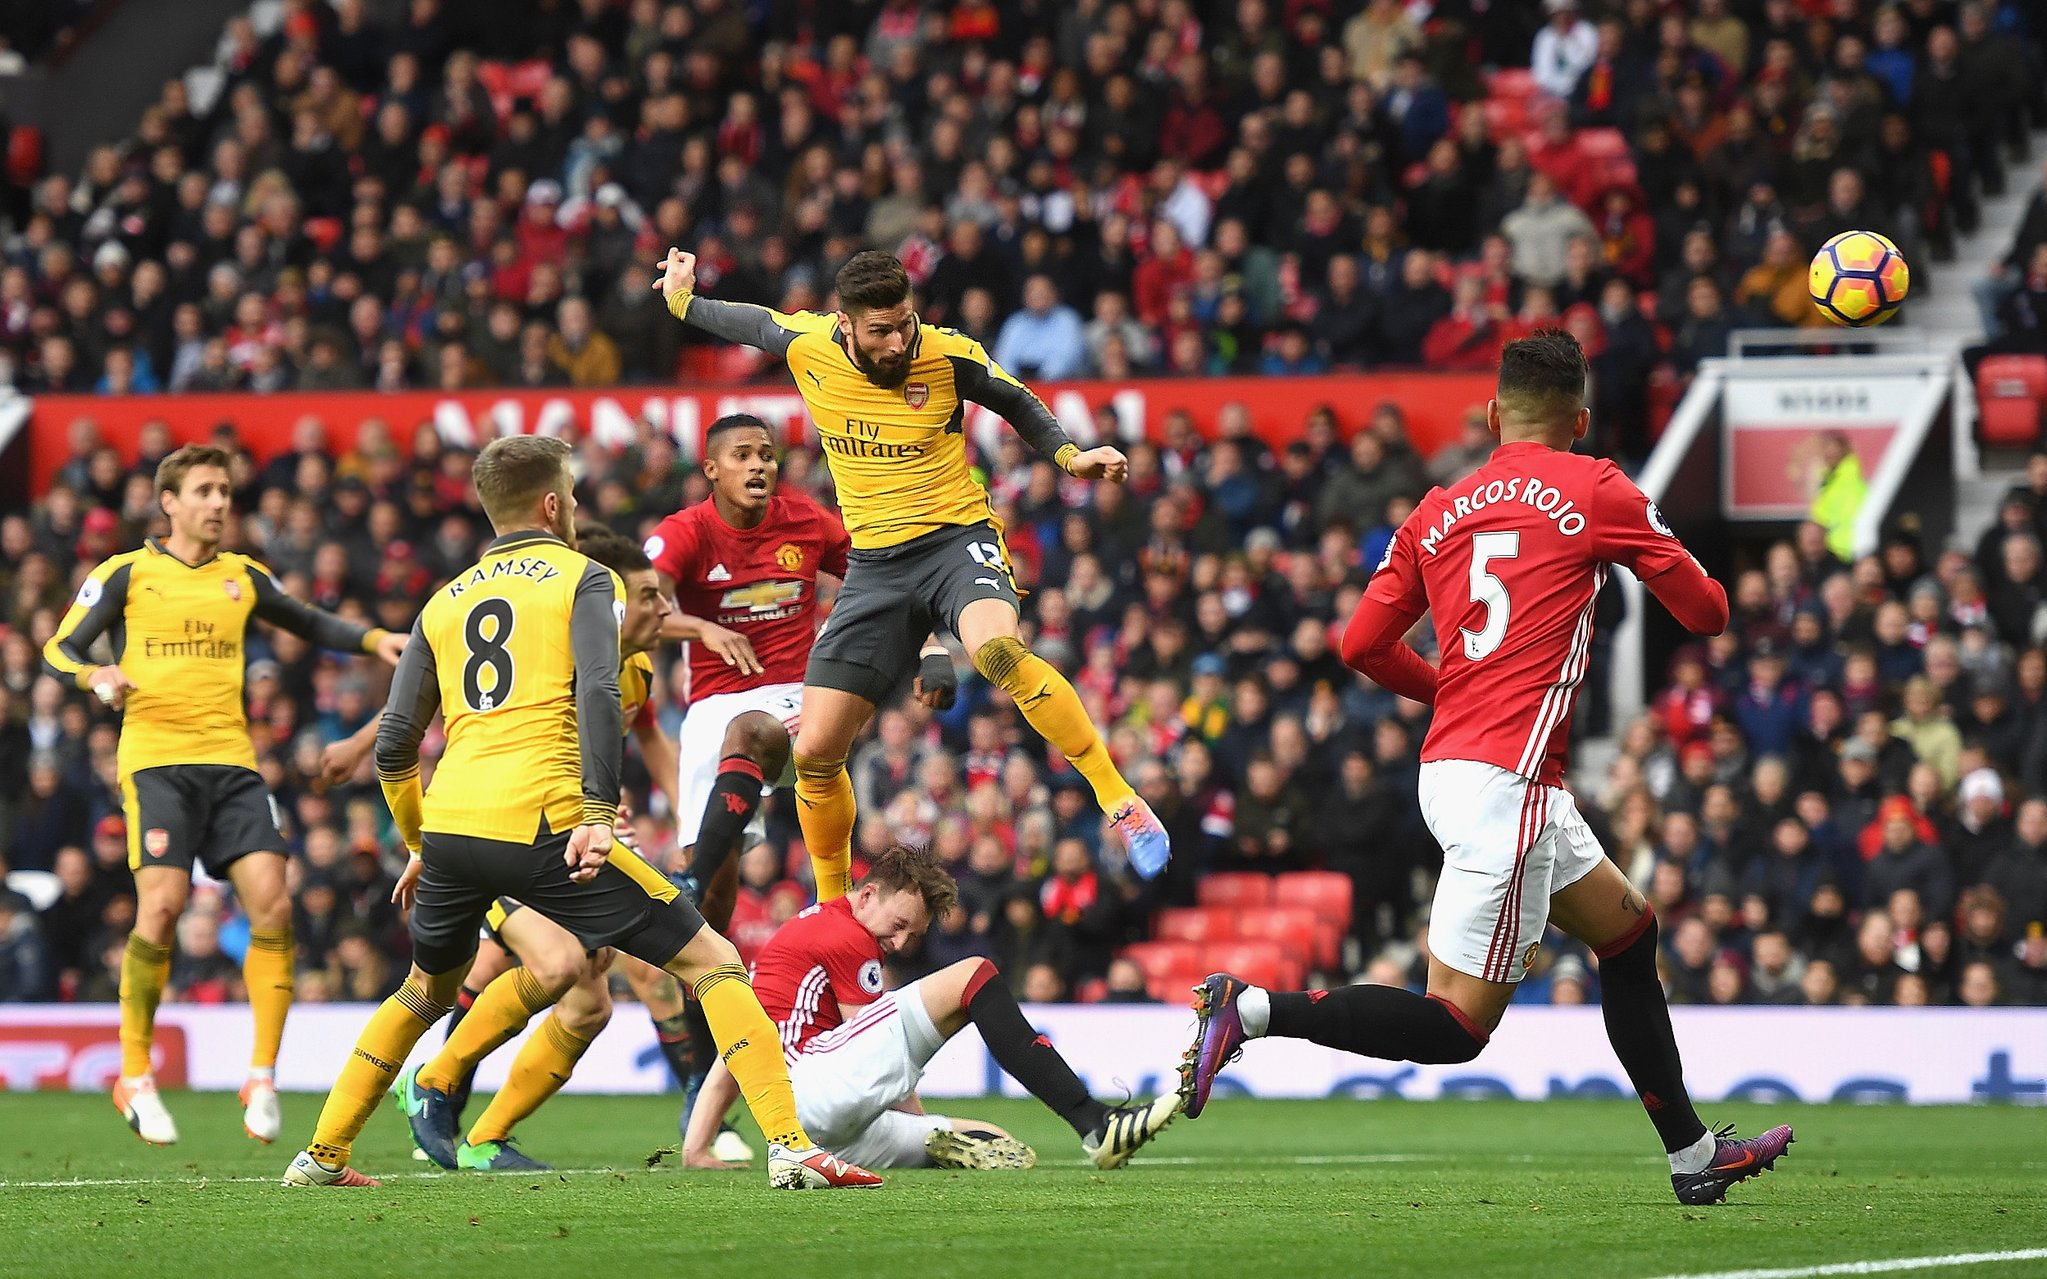 Wenger Relieved Arsenal Snatch Draw At Man United